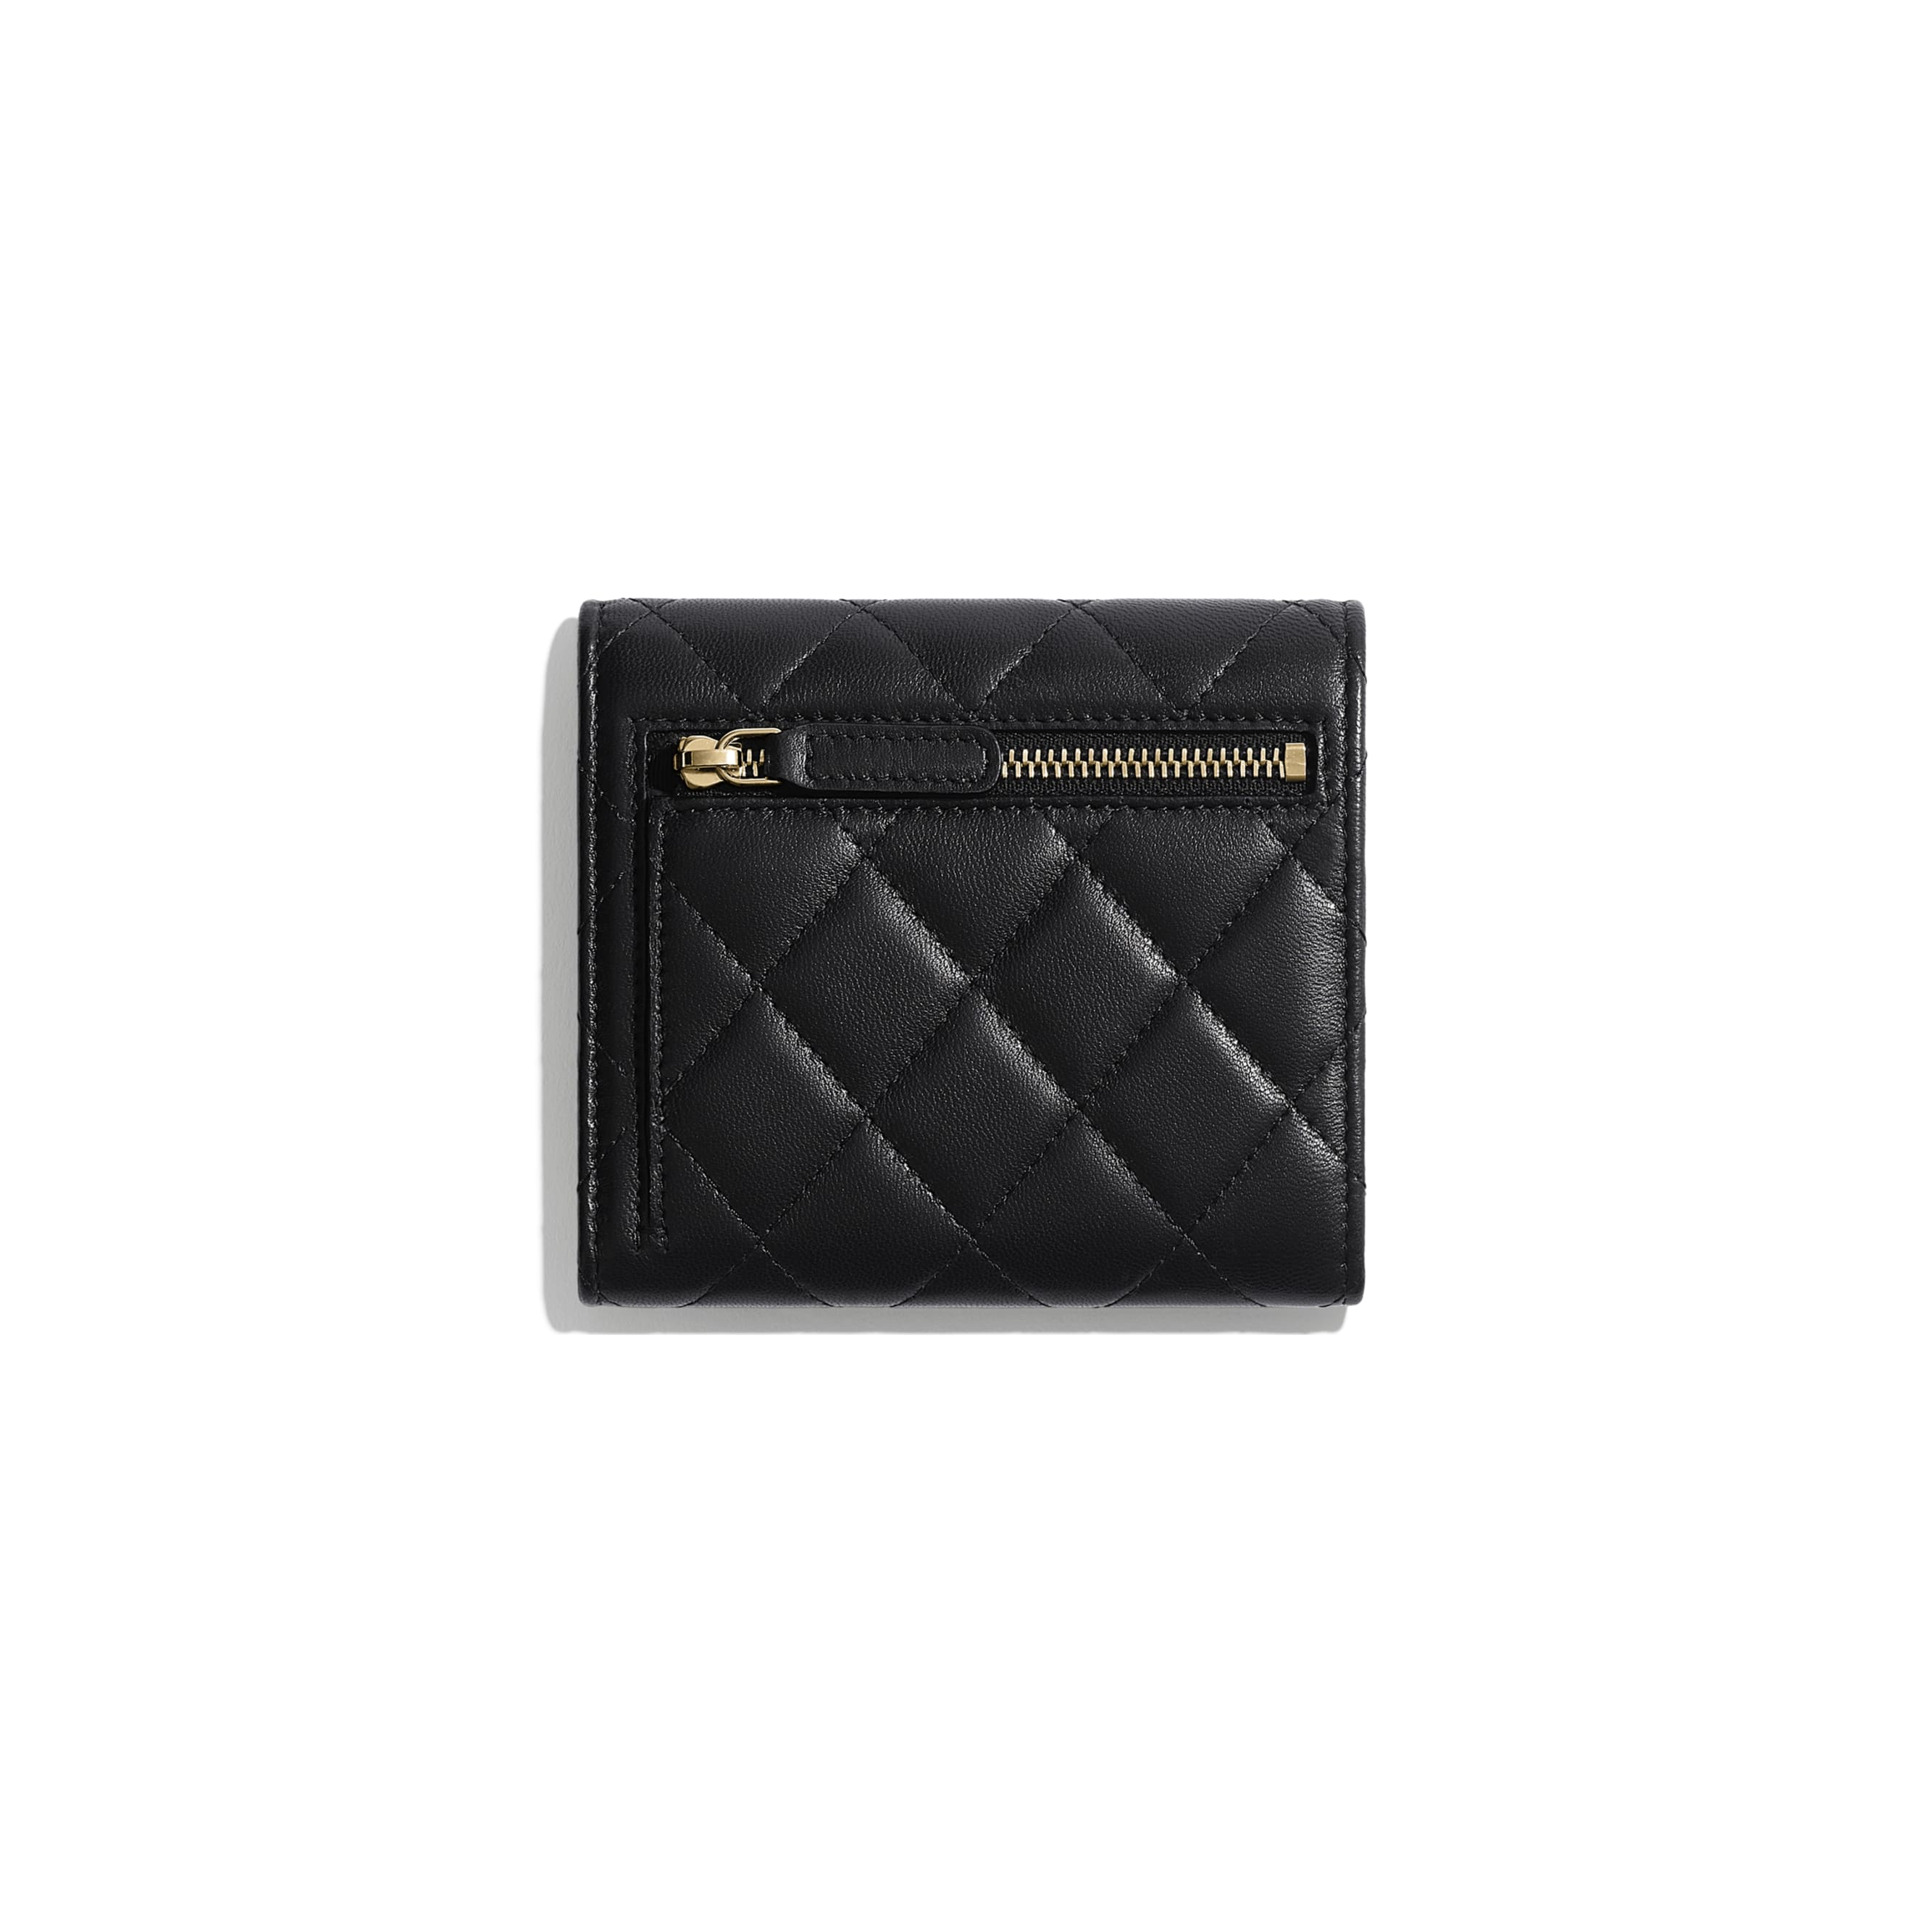 Classic Small Flap Wallet - Black - Lambskin - CHANEL - Alternative view - see standard sized version